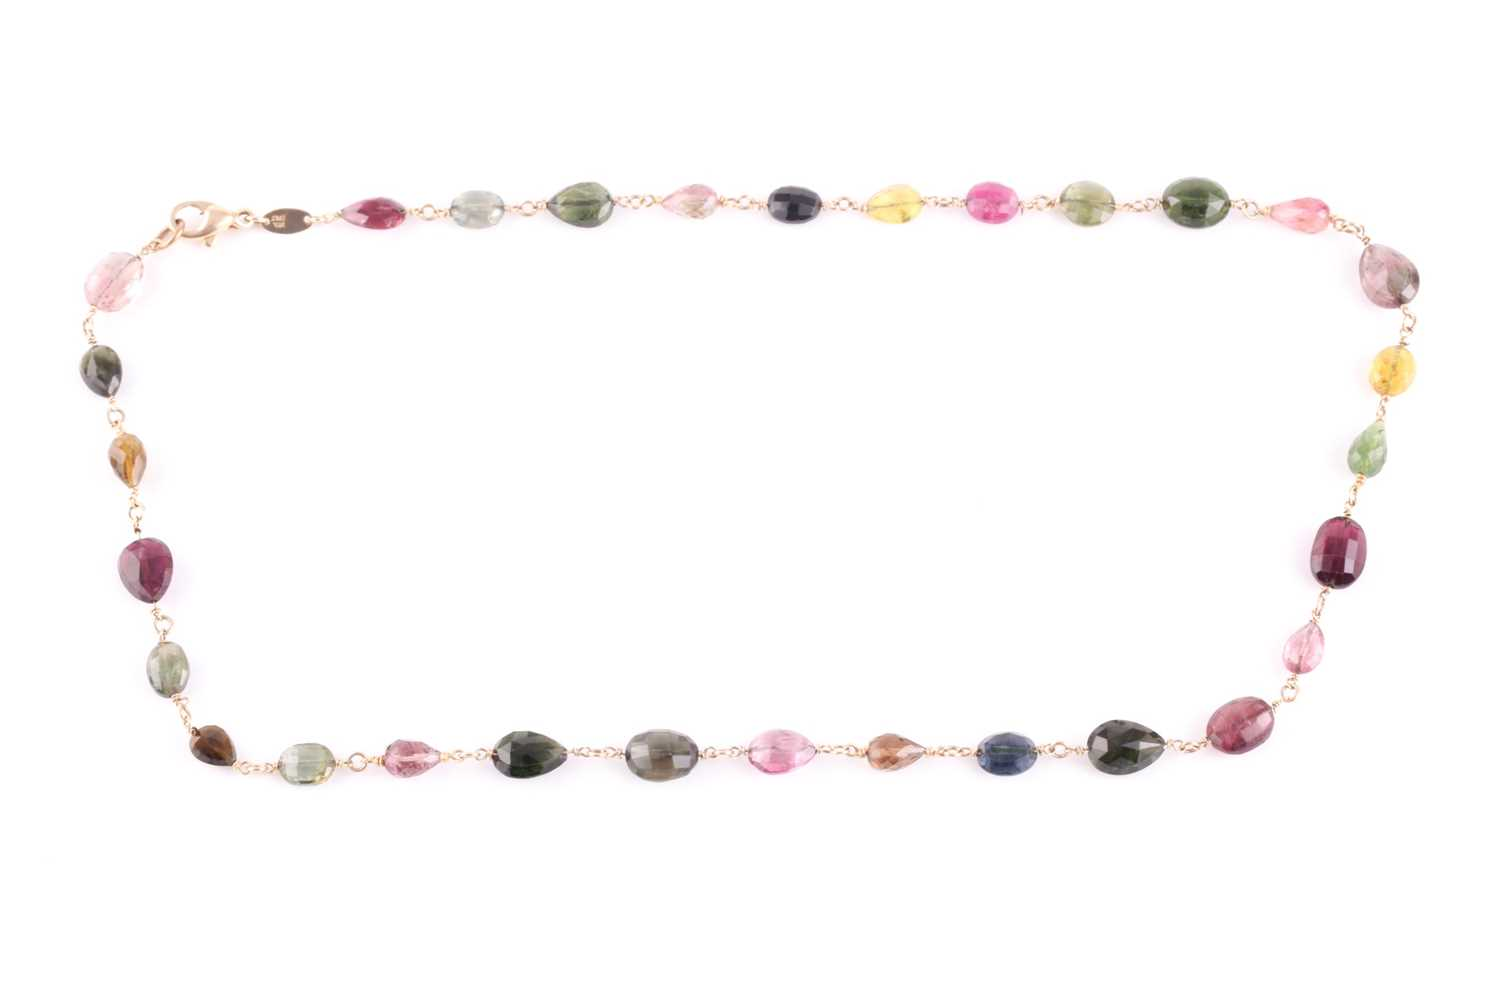 A 14ct yellow gold and varicoloured tourmaline necklace, comprised of briollete-cut pear, oval,